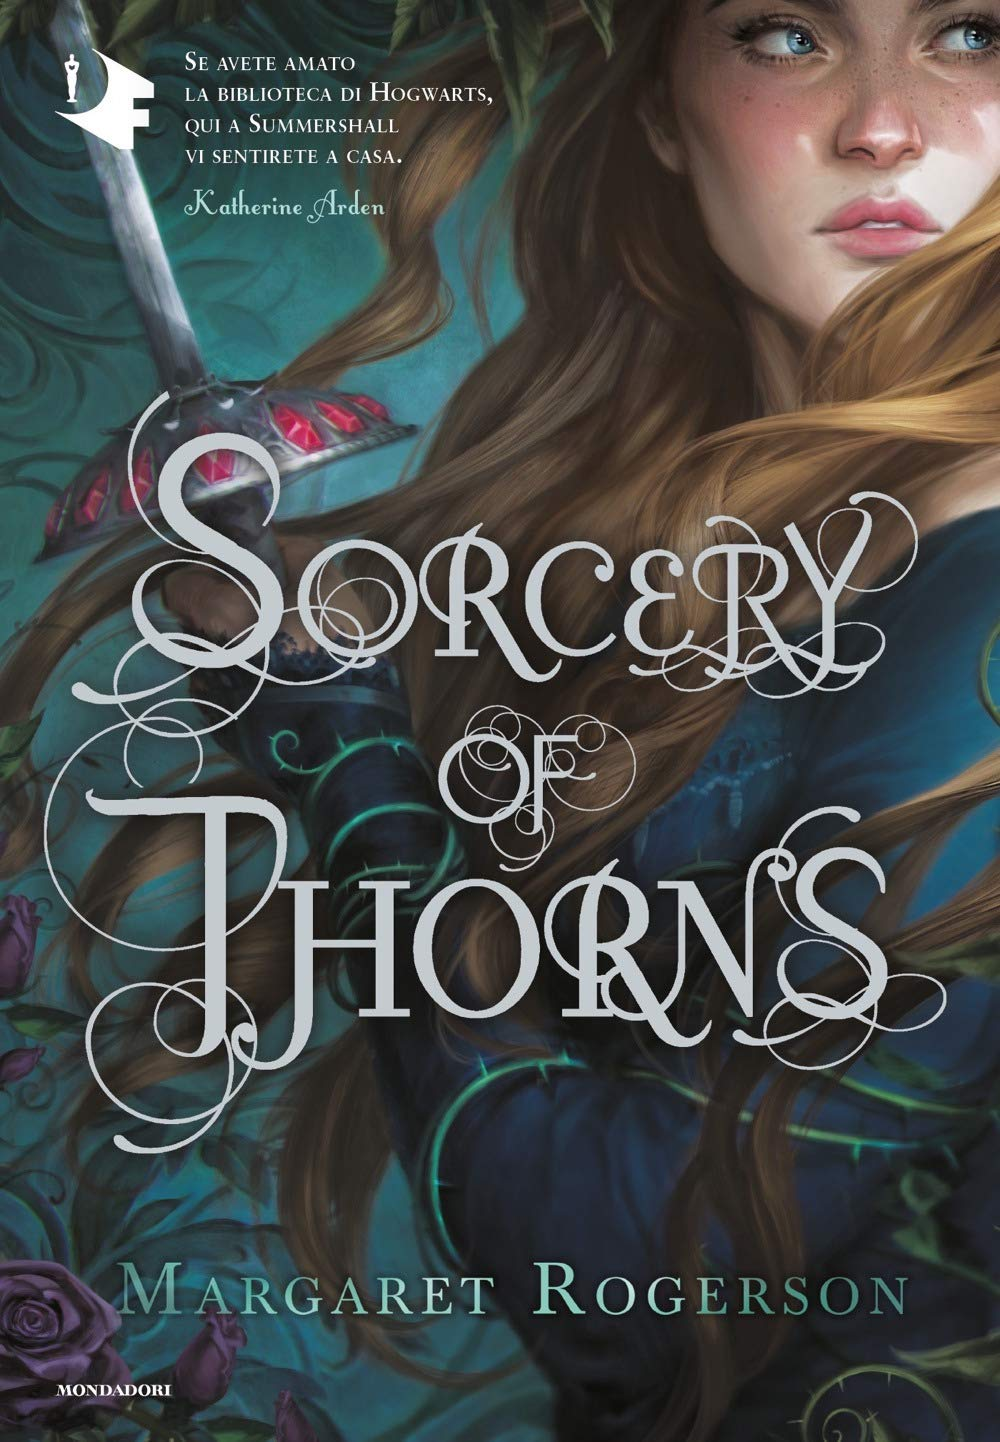 Sorcery of thorns di Margaret Rogerson